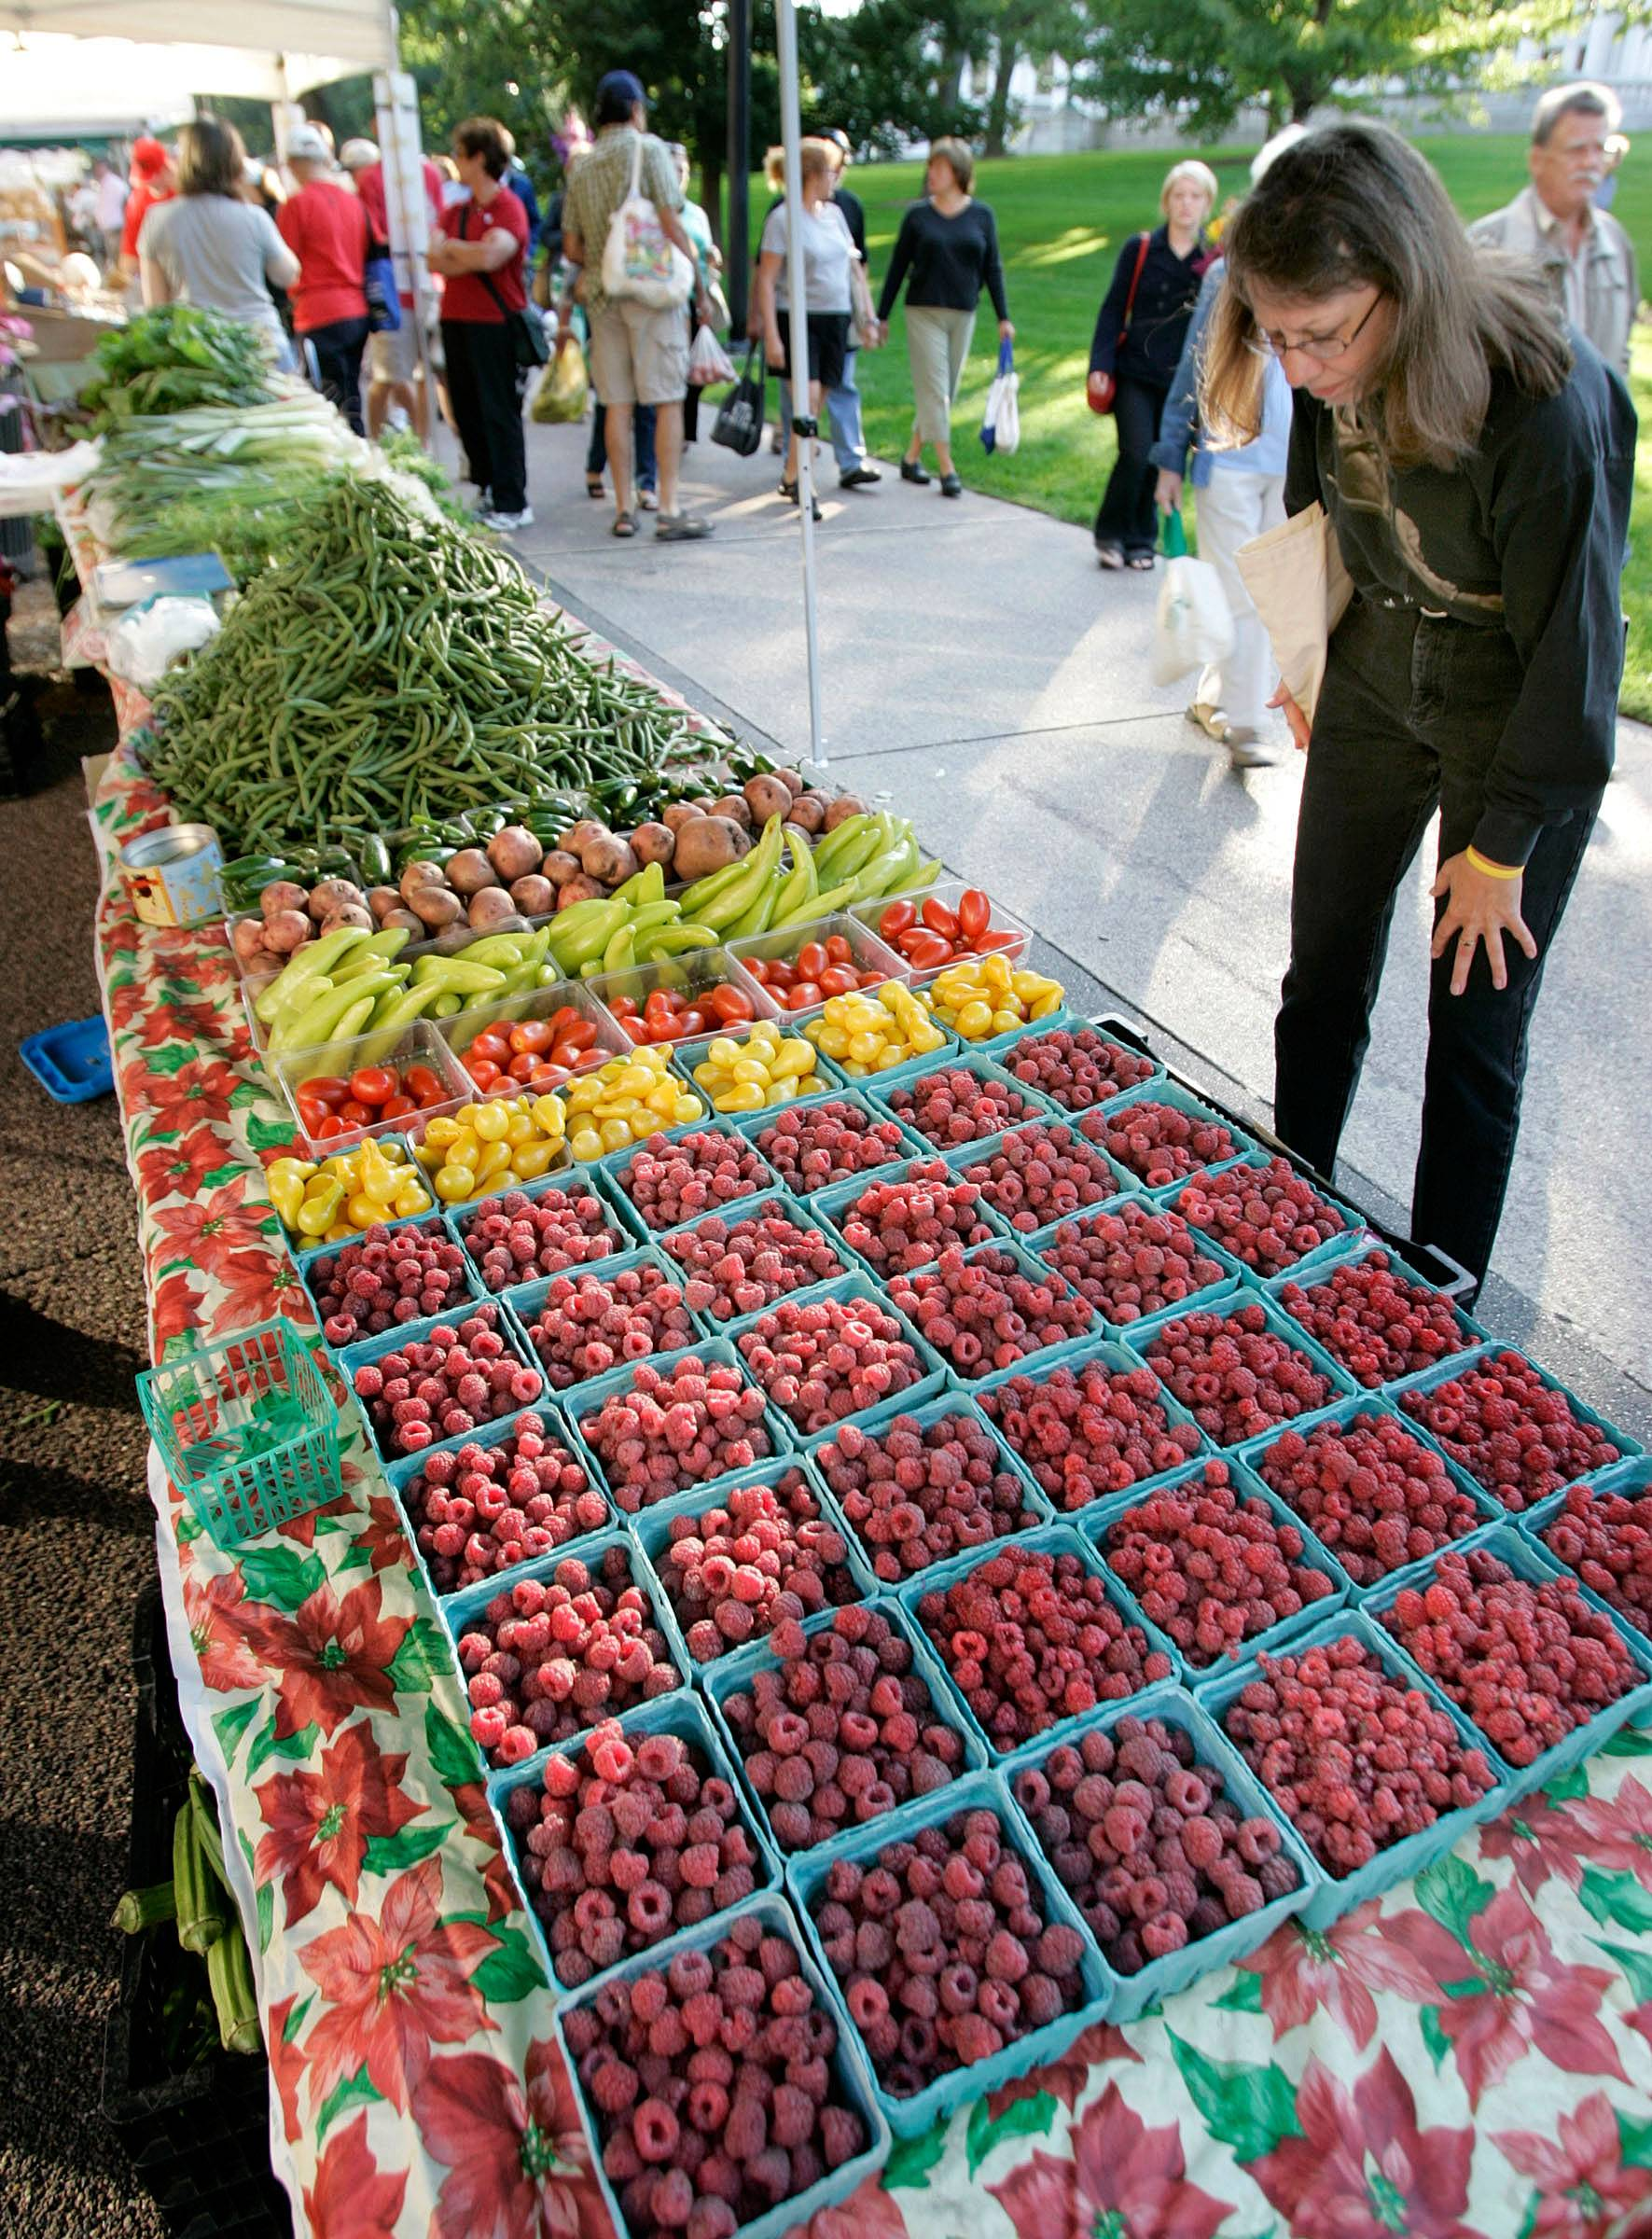 The Dane County Farmers Market in Madison, Wis., boasts about 160 vendors selling cheese, meat, cheese, bread, cheese, fruits and vegetables, cheese, and, well, cheese. But you don't need to spend anything to enjoy the market, which runs from April into November. There are plenty of samples to be had.